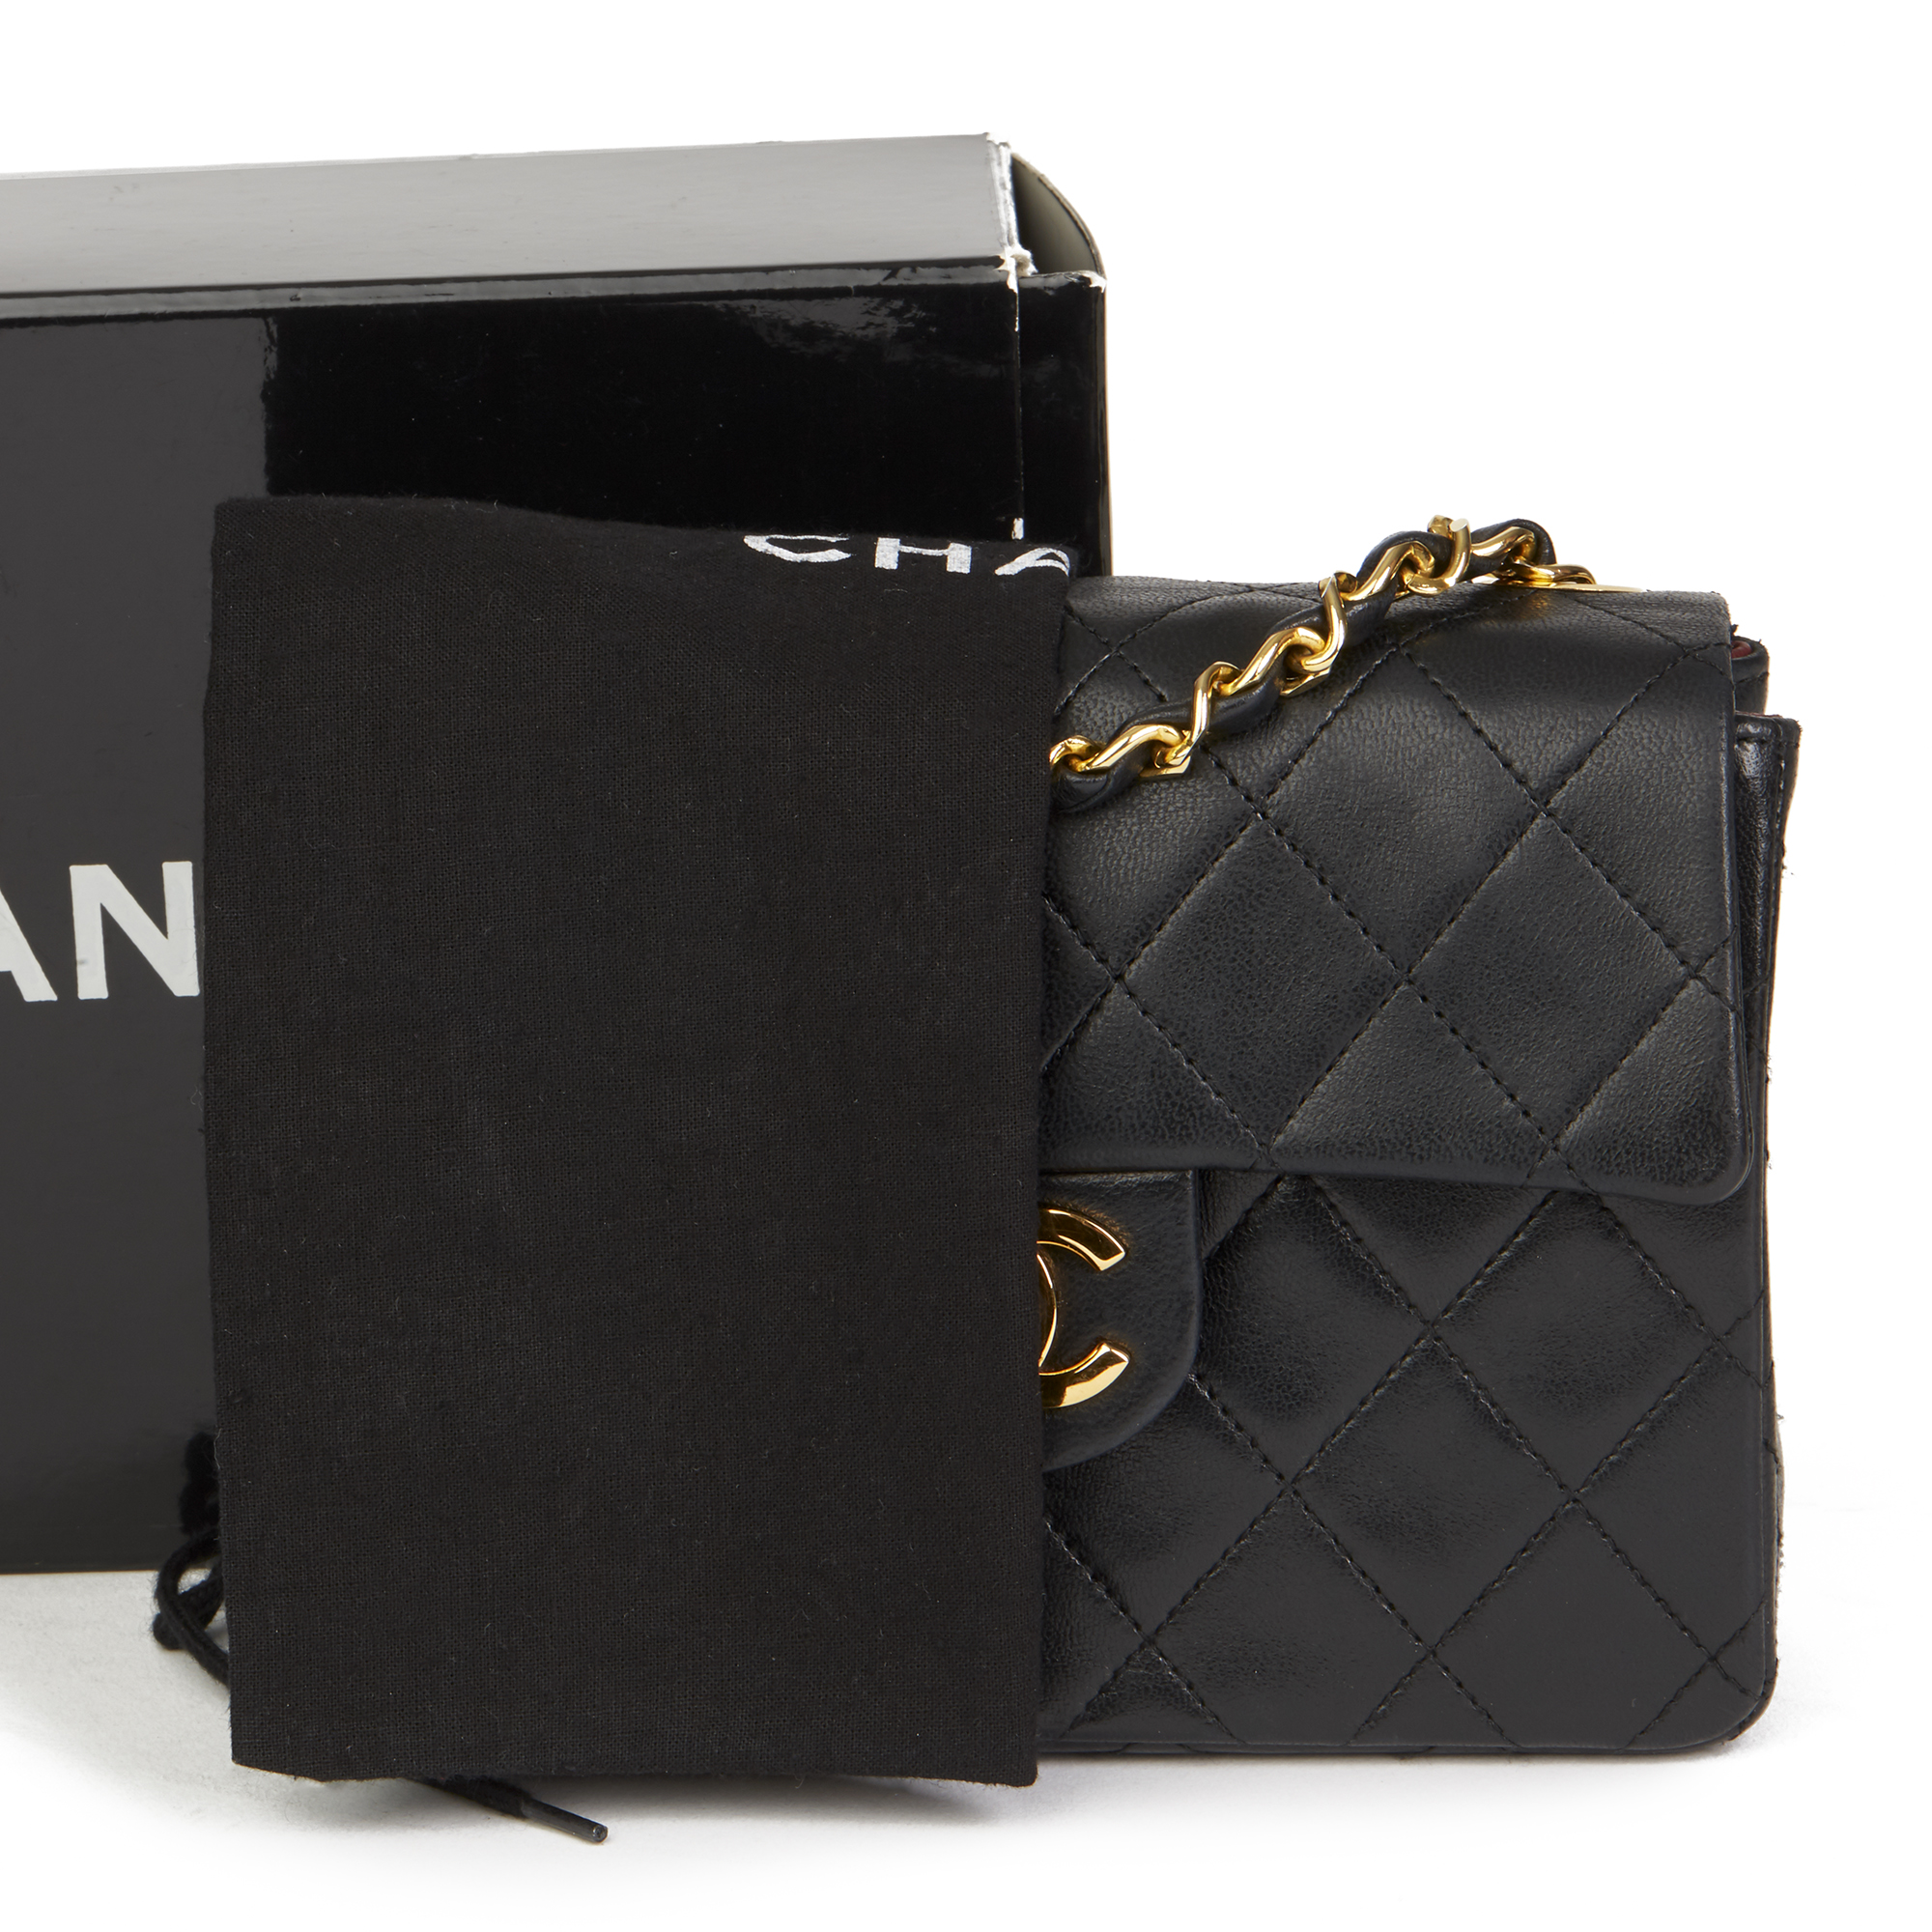 20a62a0a4da1 Details about CHANEL BLACK QUILTED LAMBSKIN VINTAGE MINI FLAP BAG HB2599